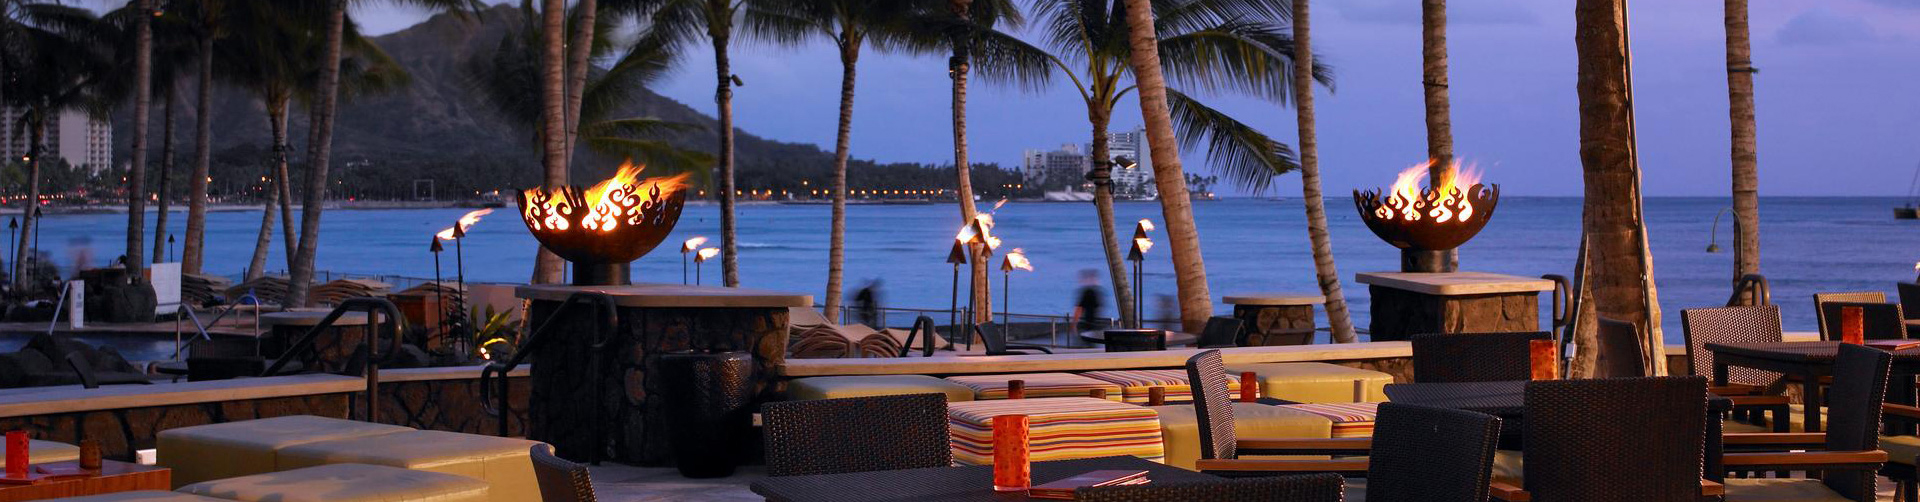 Where to eat in waikiki local restaurants for Best private dining rooms honolulu